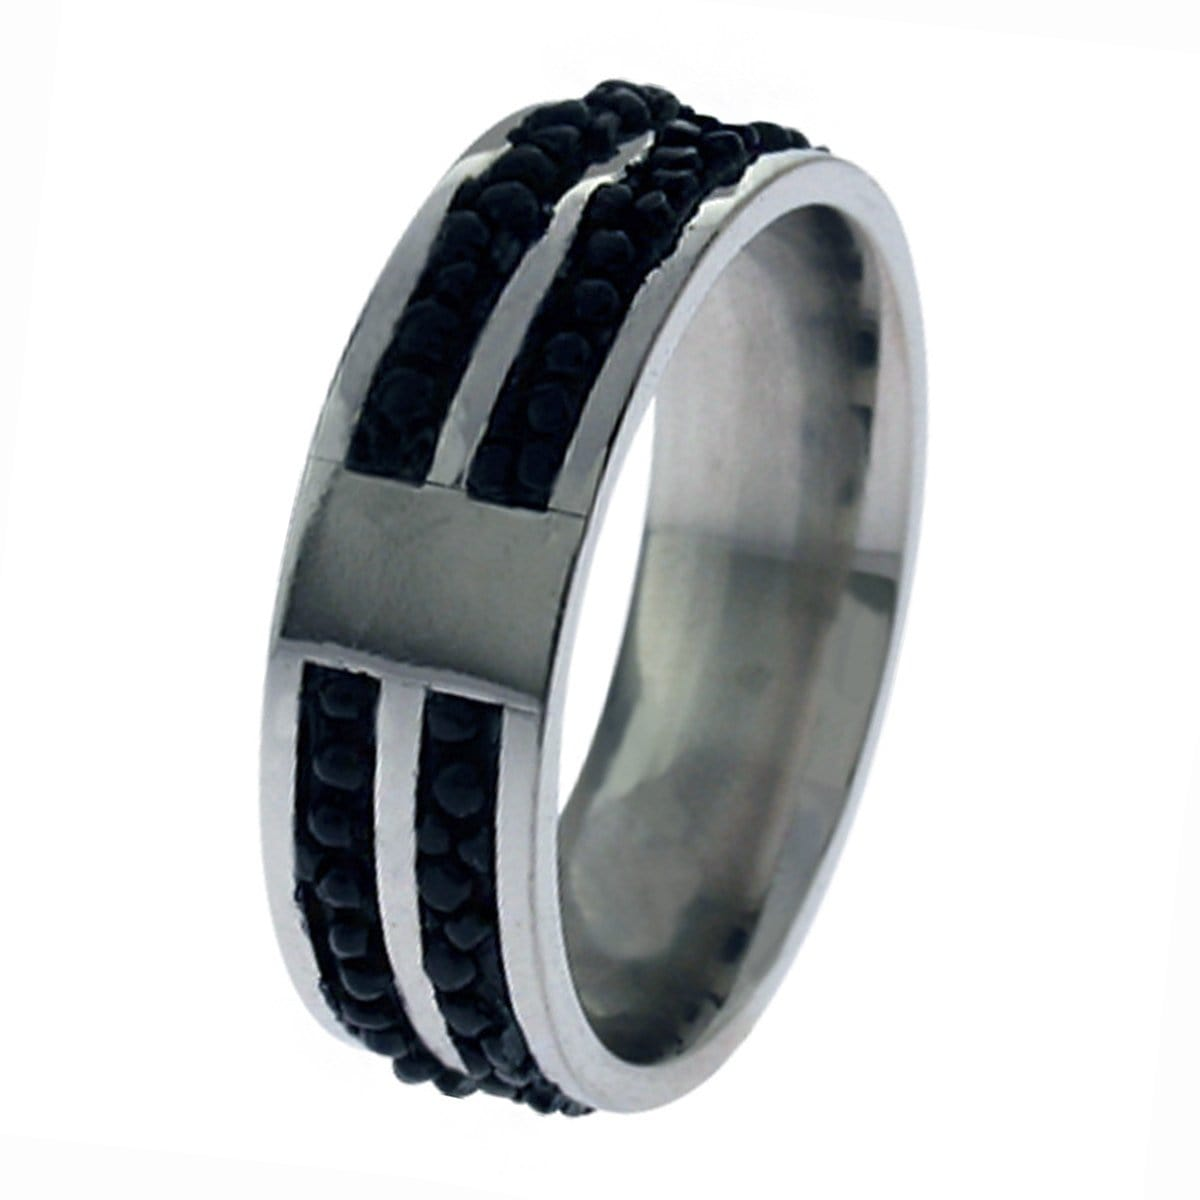 Silver Stainless Steel with Small Black Bead Ring Rings